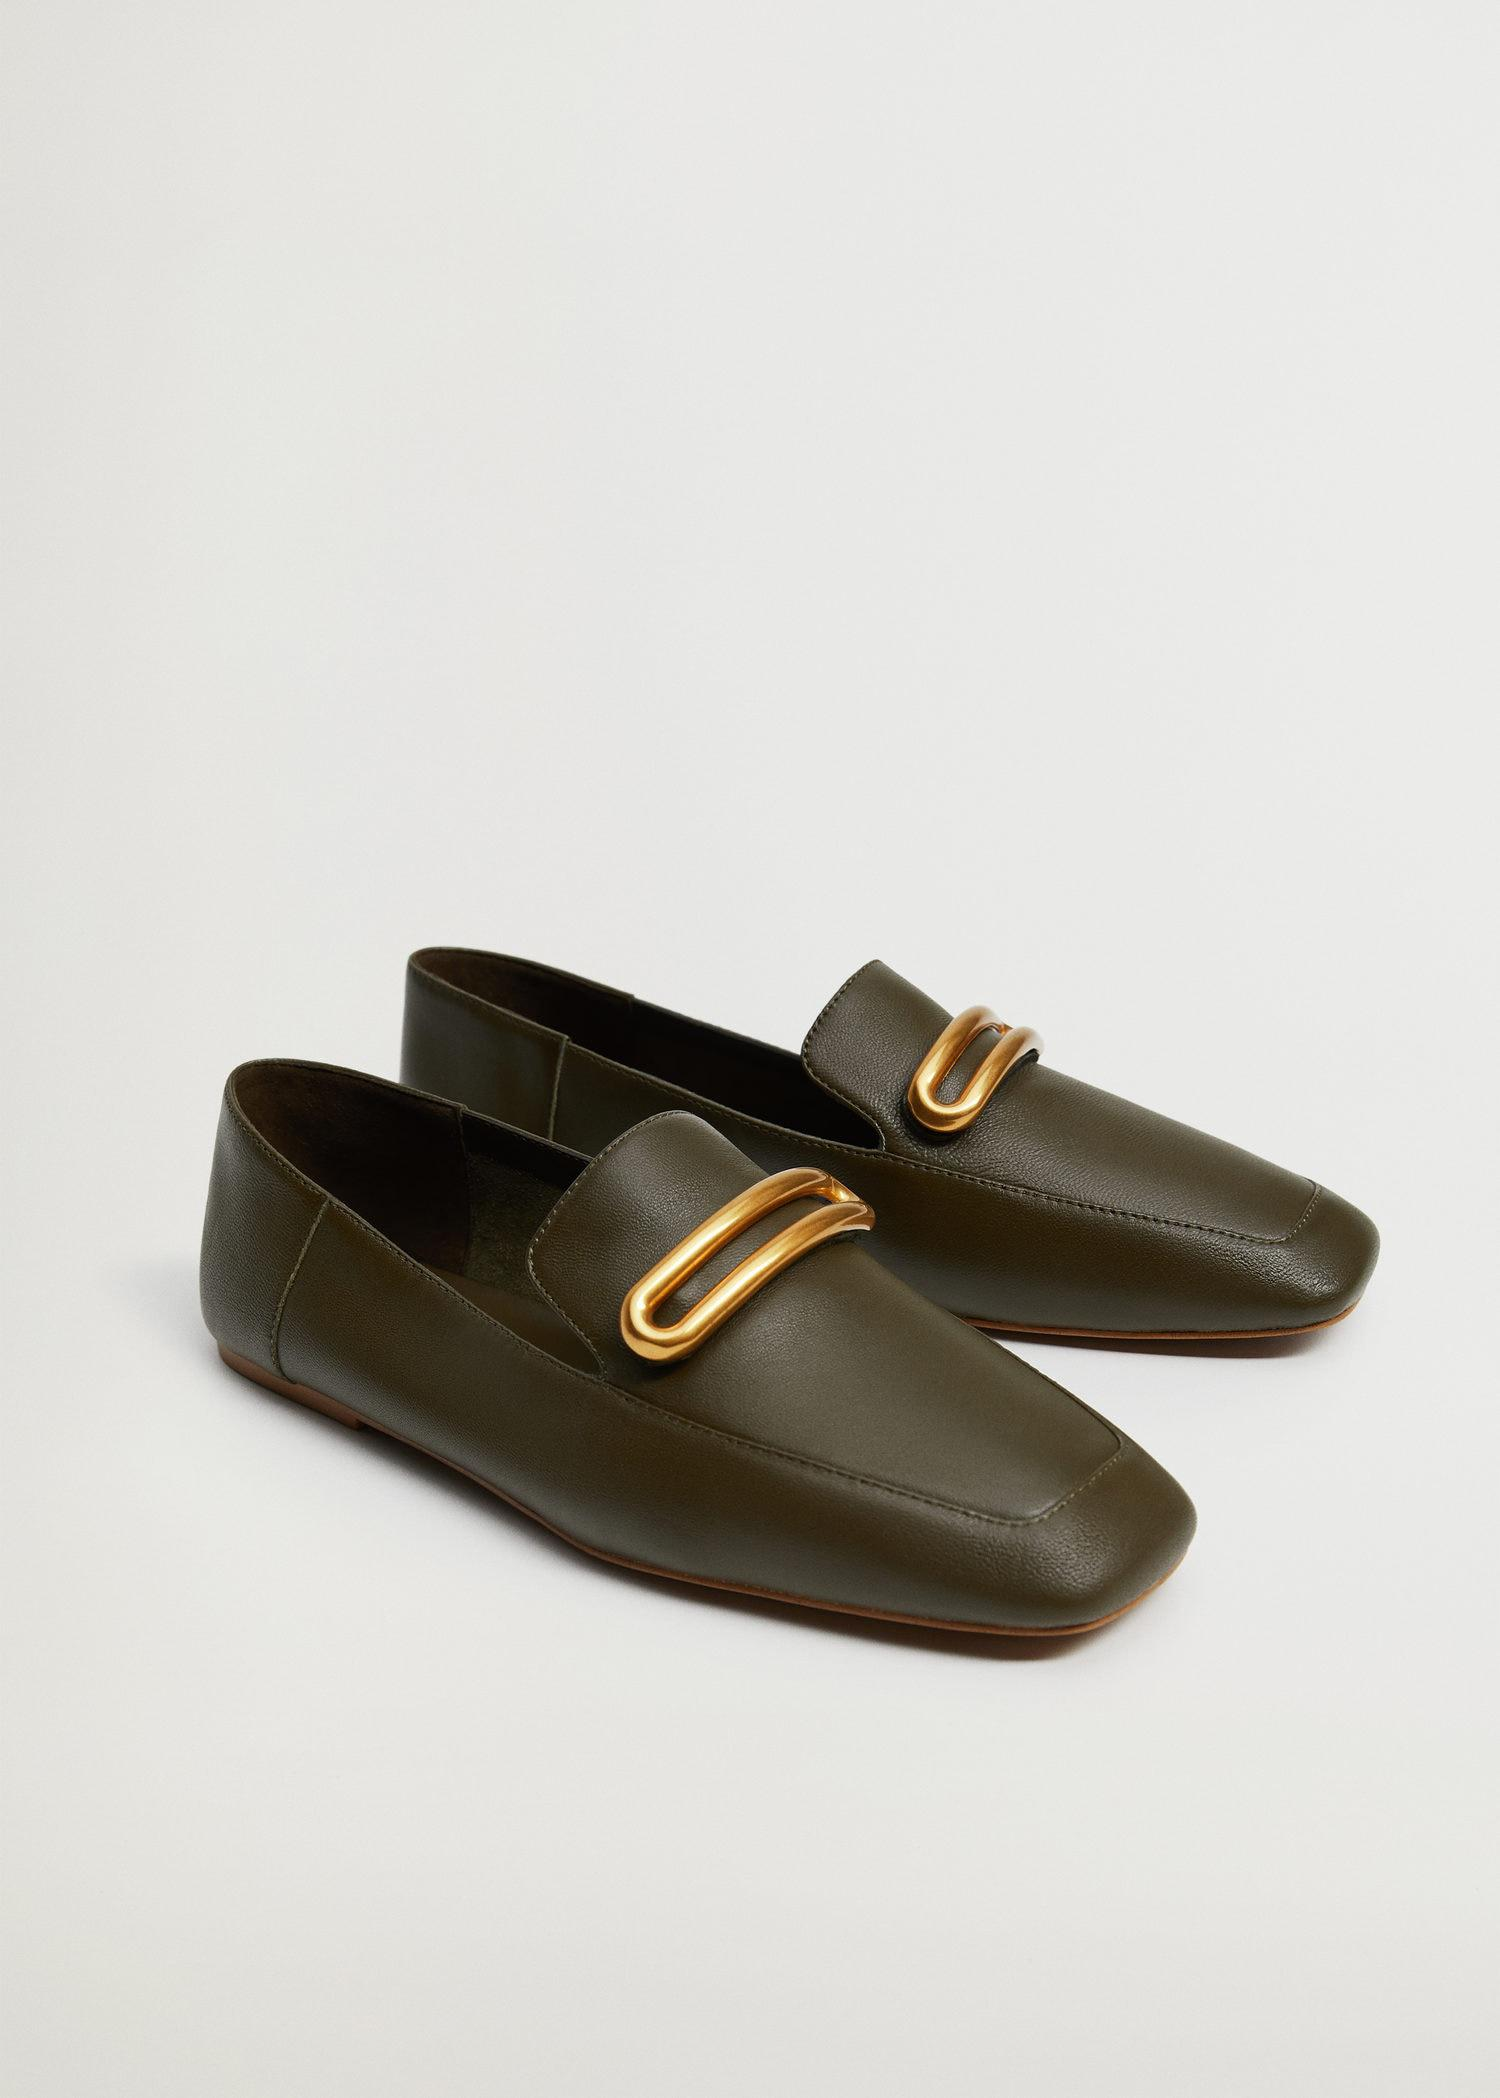 Buckle leather moccasins 1